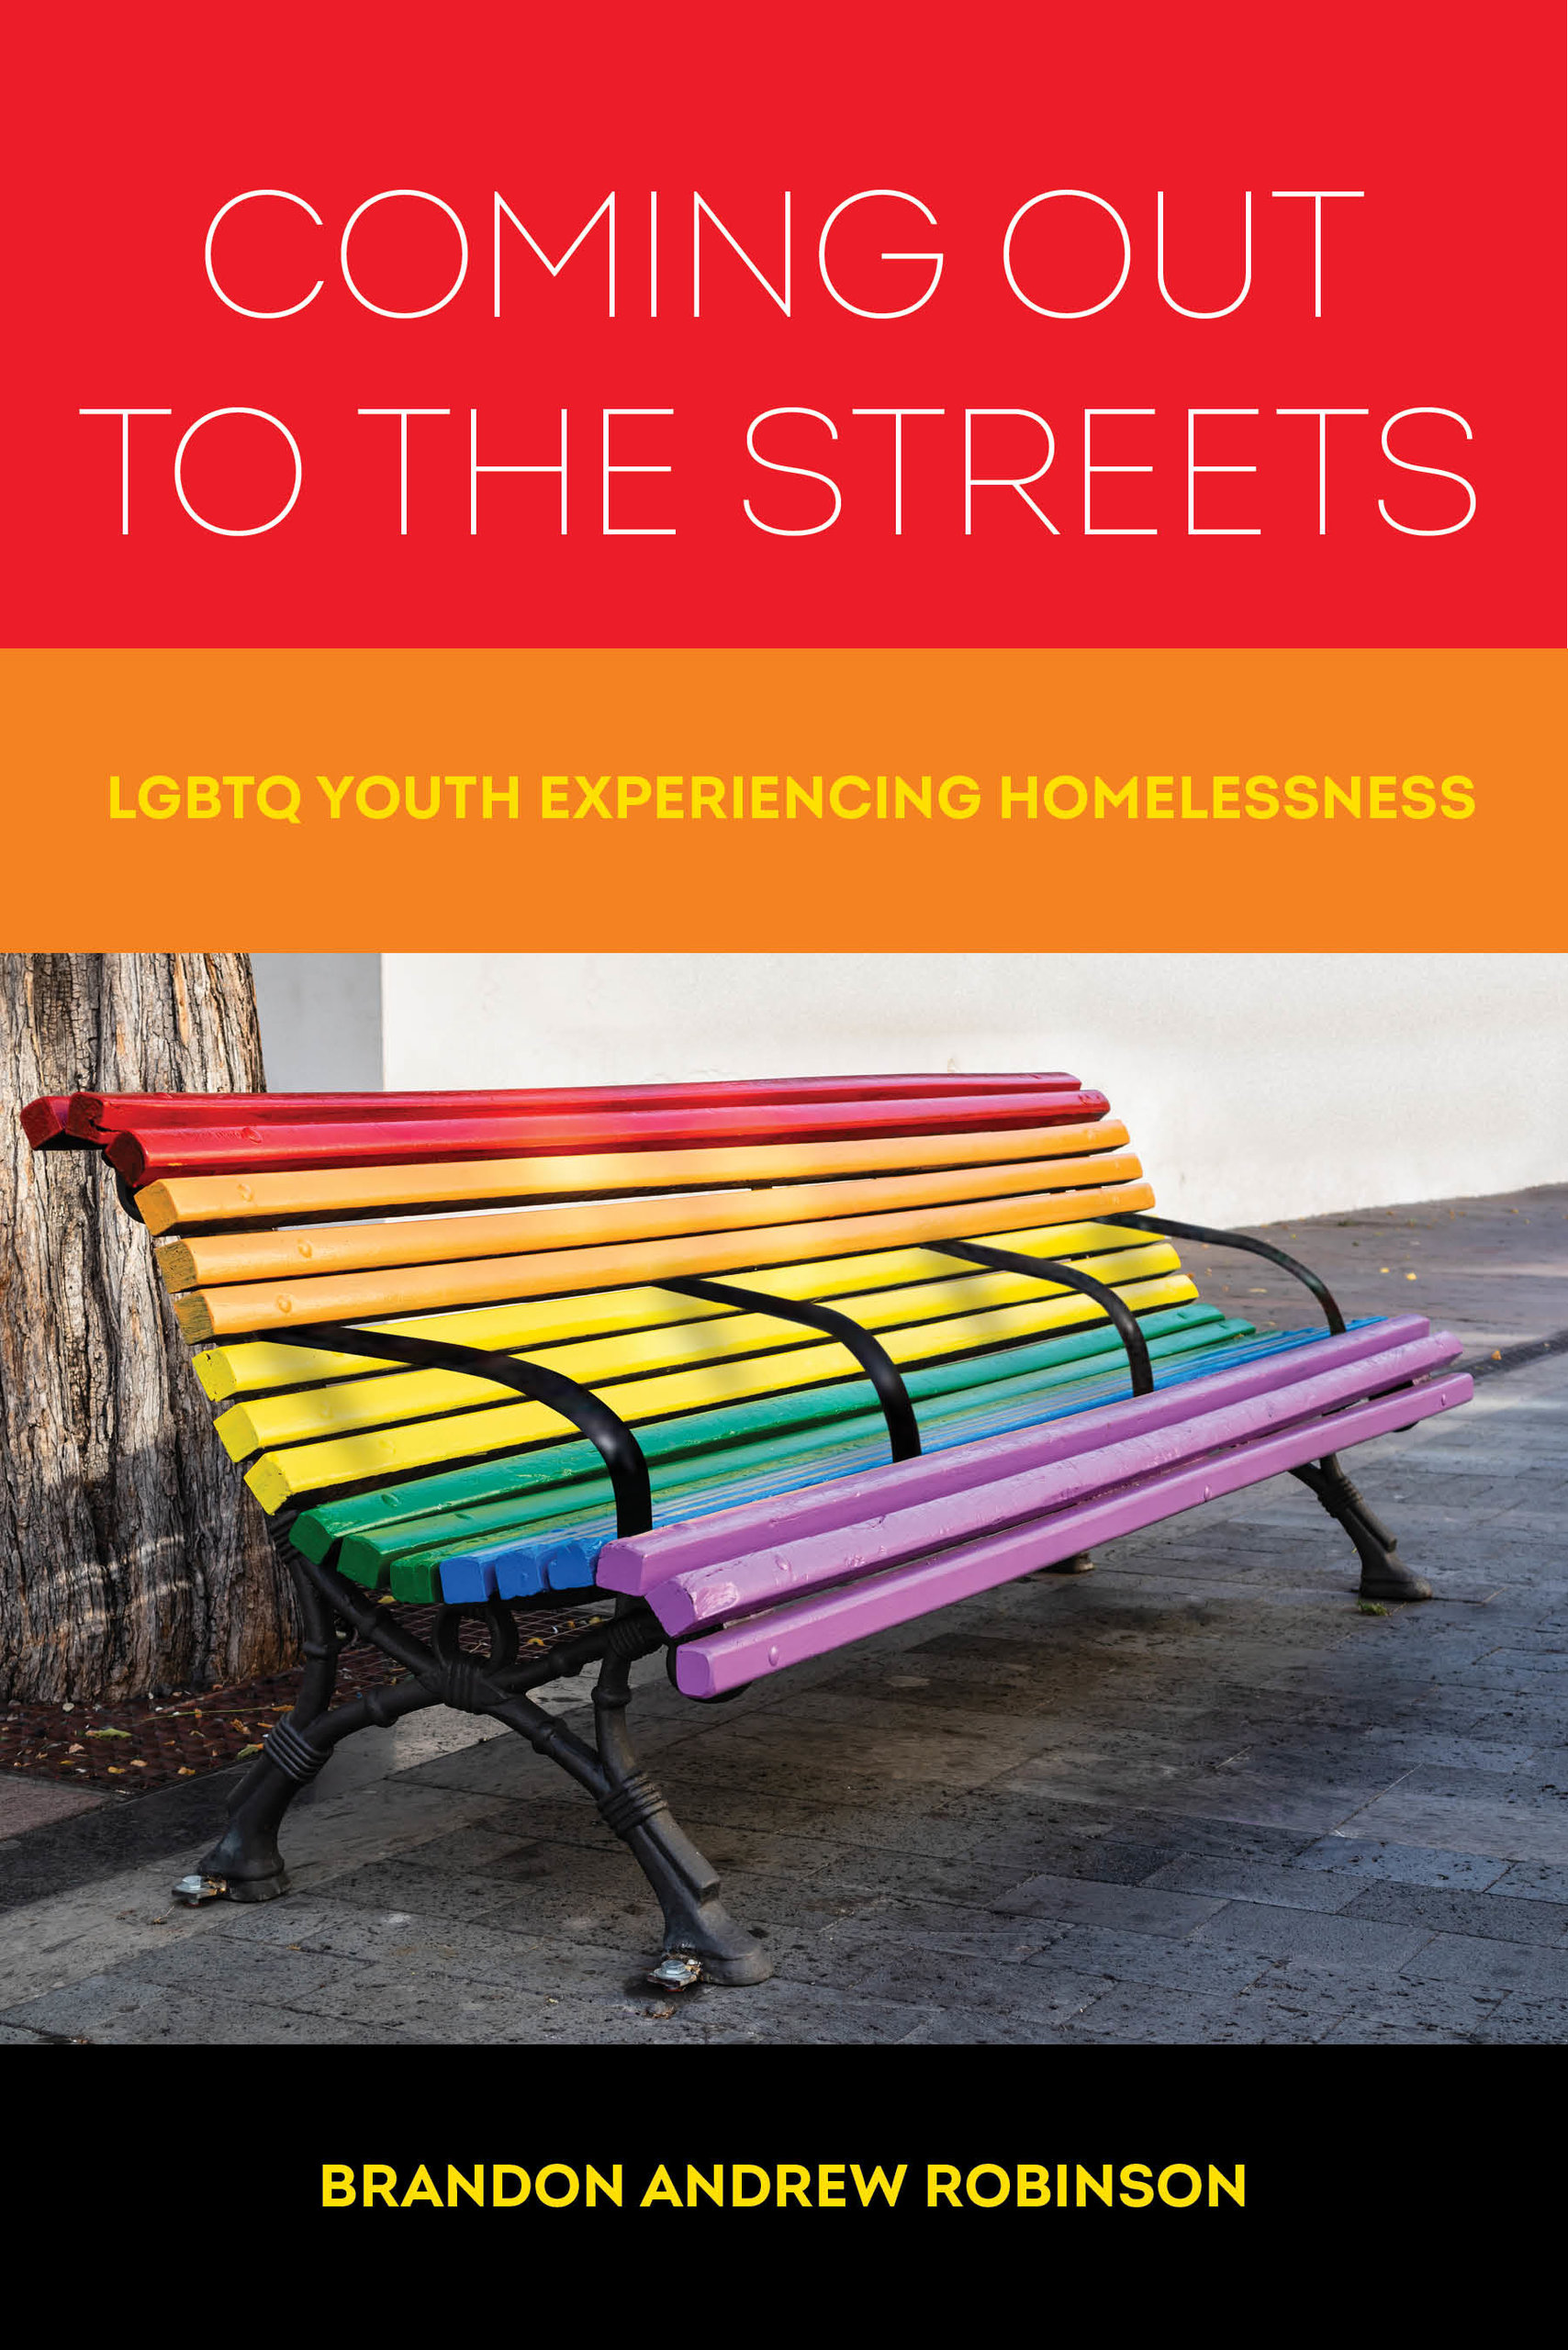 Coming Out to the Streets: LGBTQ Youth Experiencing Homelessness